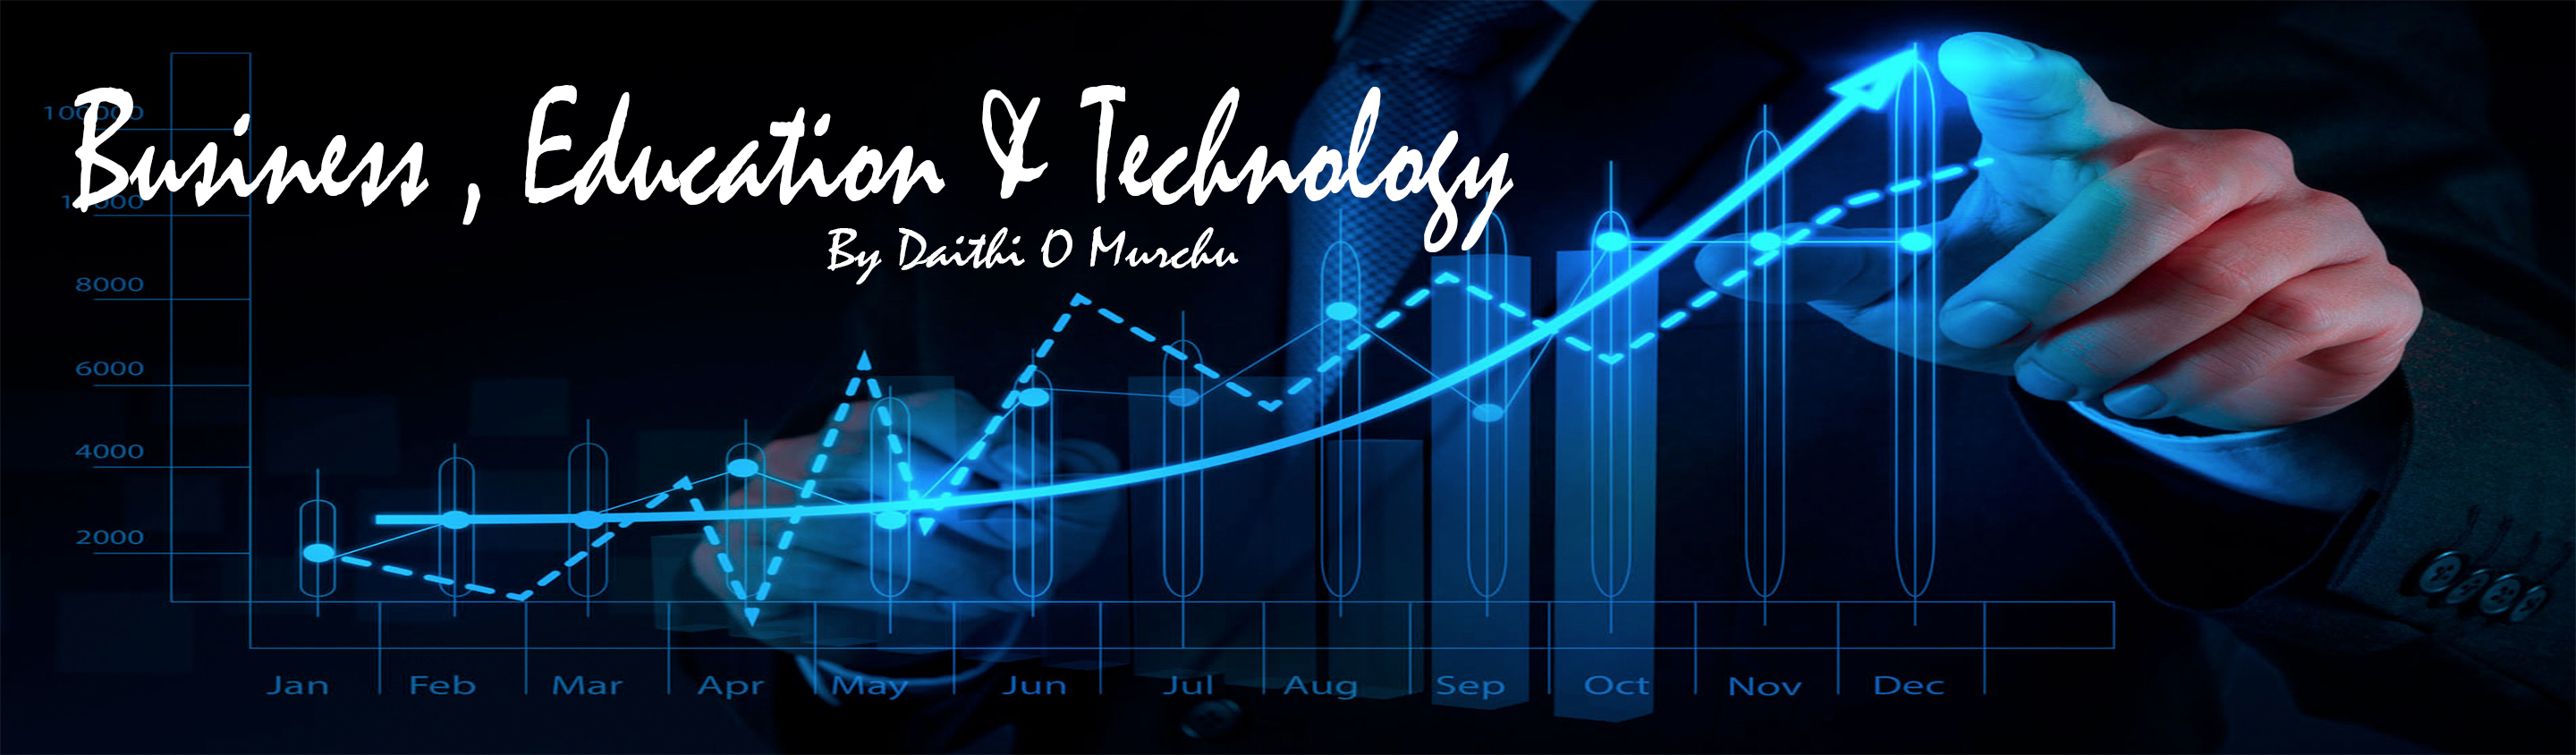 Business, Technology & Education Banner